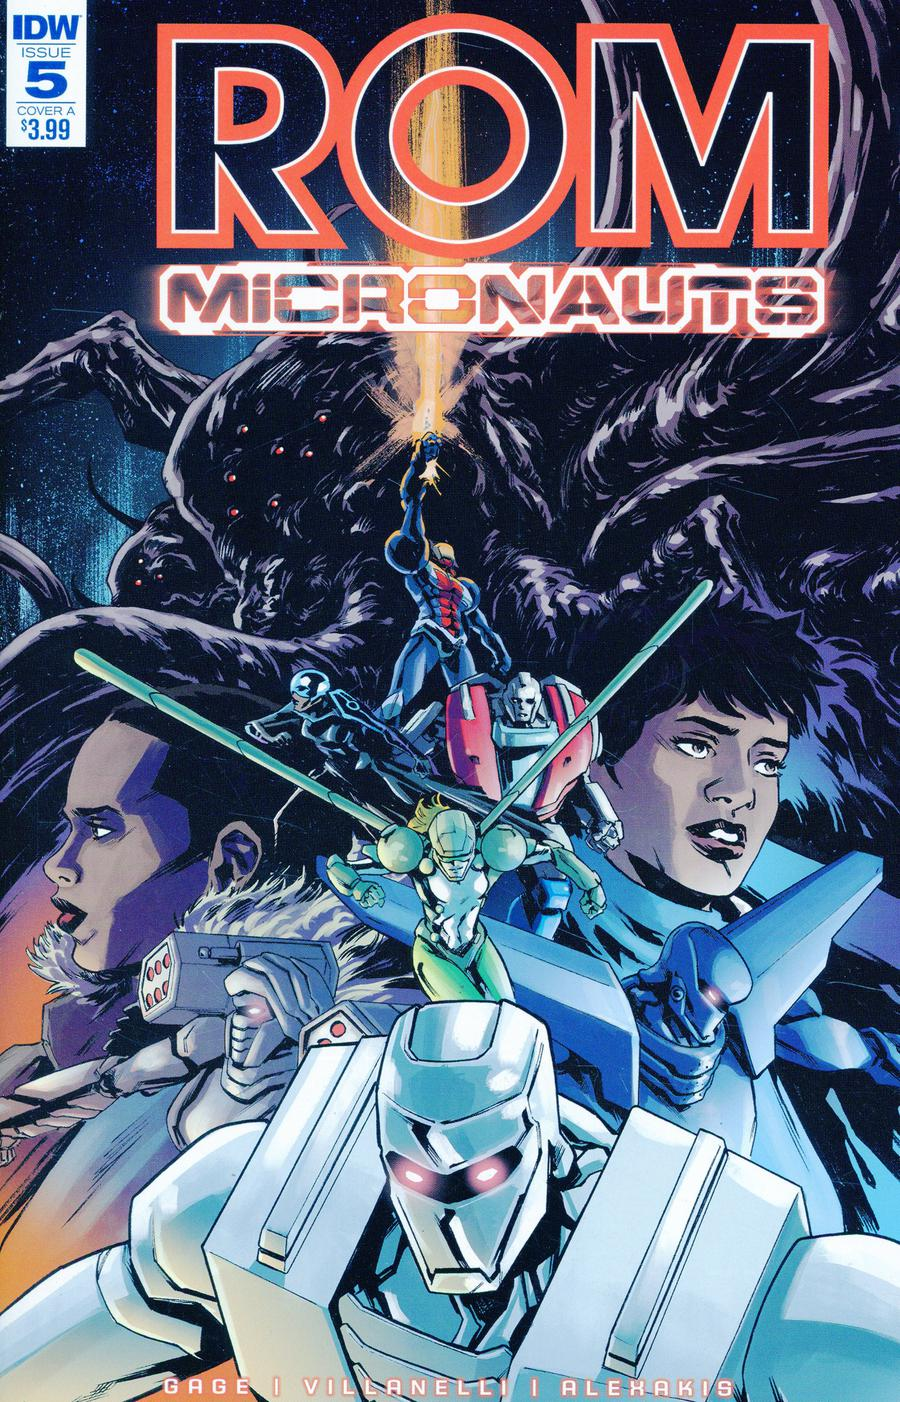 ROM And The Micronauts #5 Cover A Regular Paolo Villanelli Cover